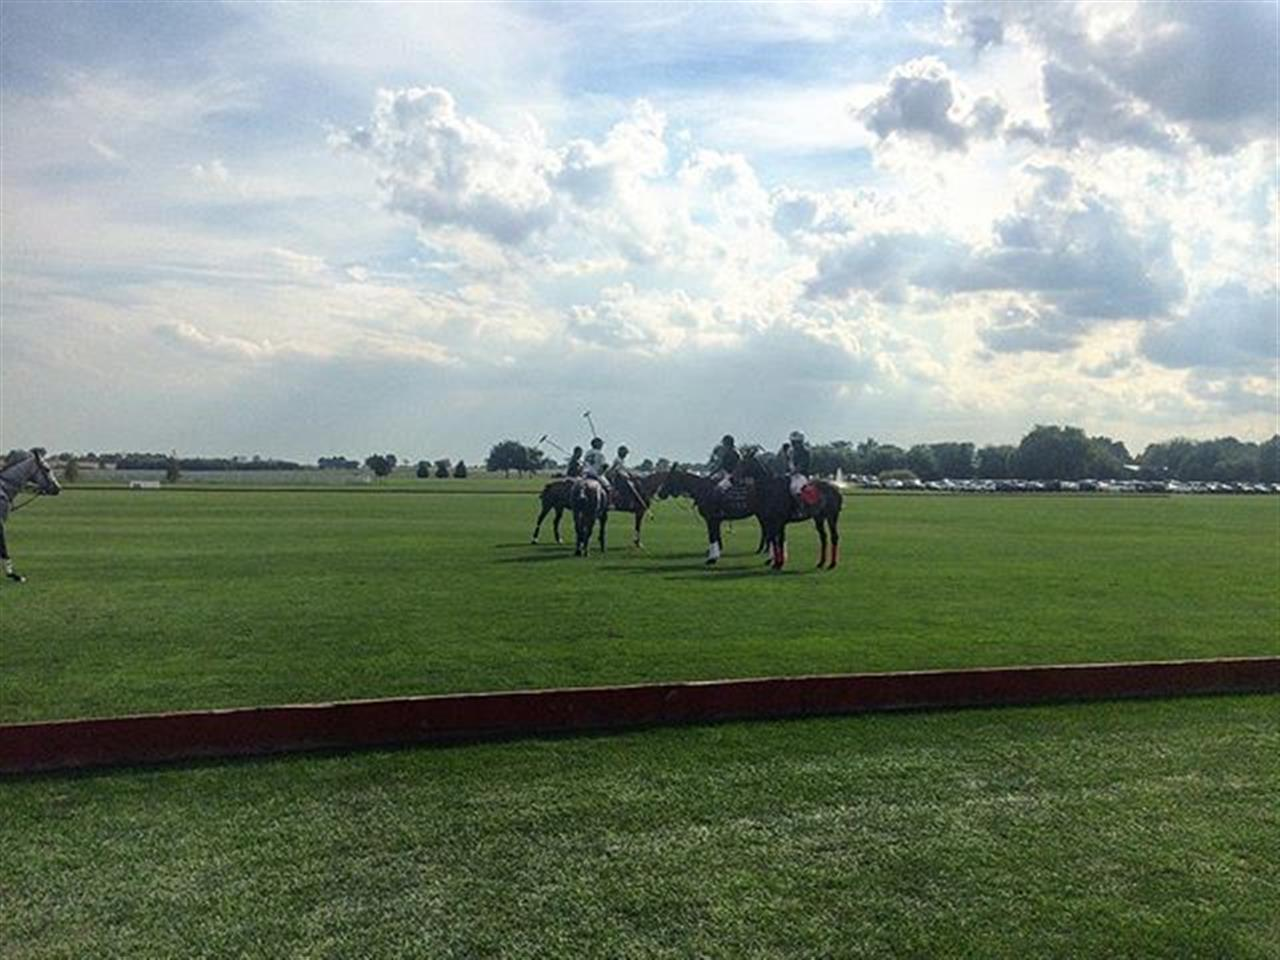 Huddle before the match. #chicago #leadingrelocal #pologrounds #westernsuburbs #polo #realestate #bairdwarner